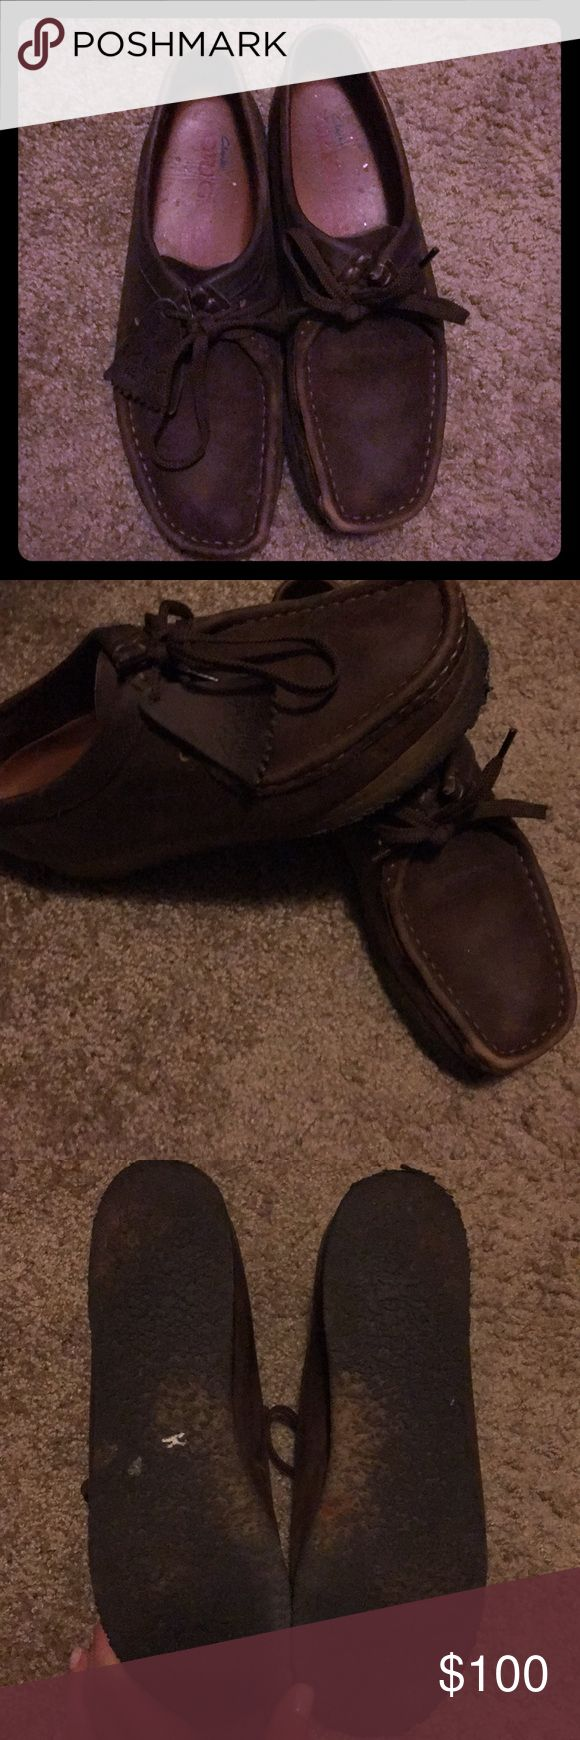 Beeswax Clark's Wallabees Brown Beeswax Wallabees. In good condition. Worn a lot but taken well care of! Clarks Shoes Ankle Boots & Booties